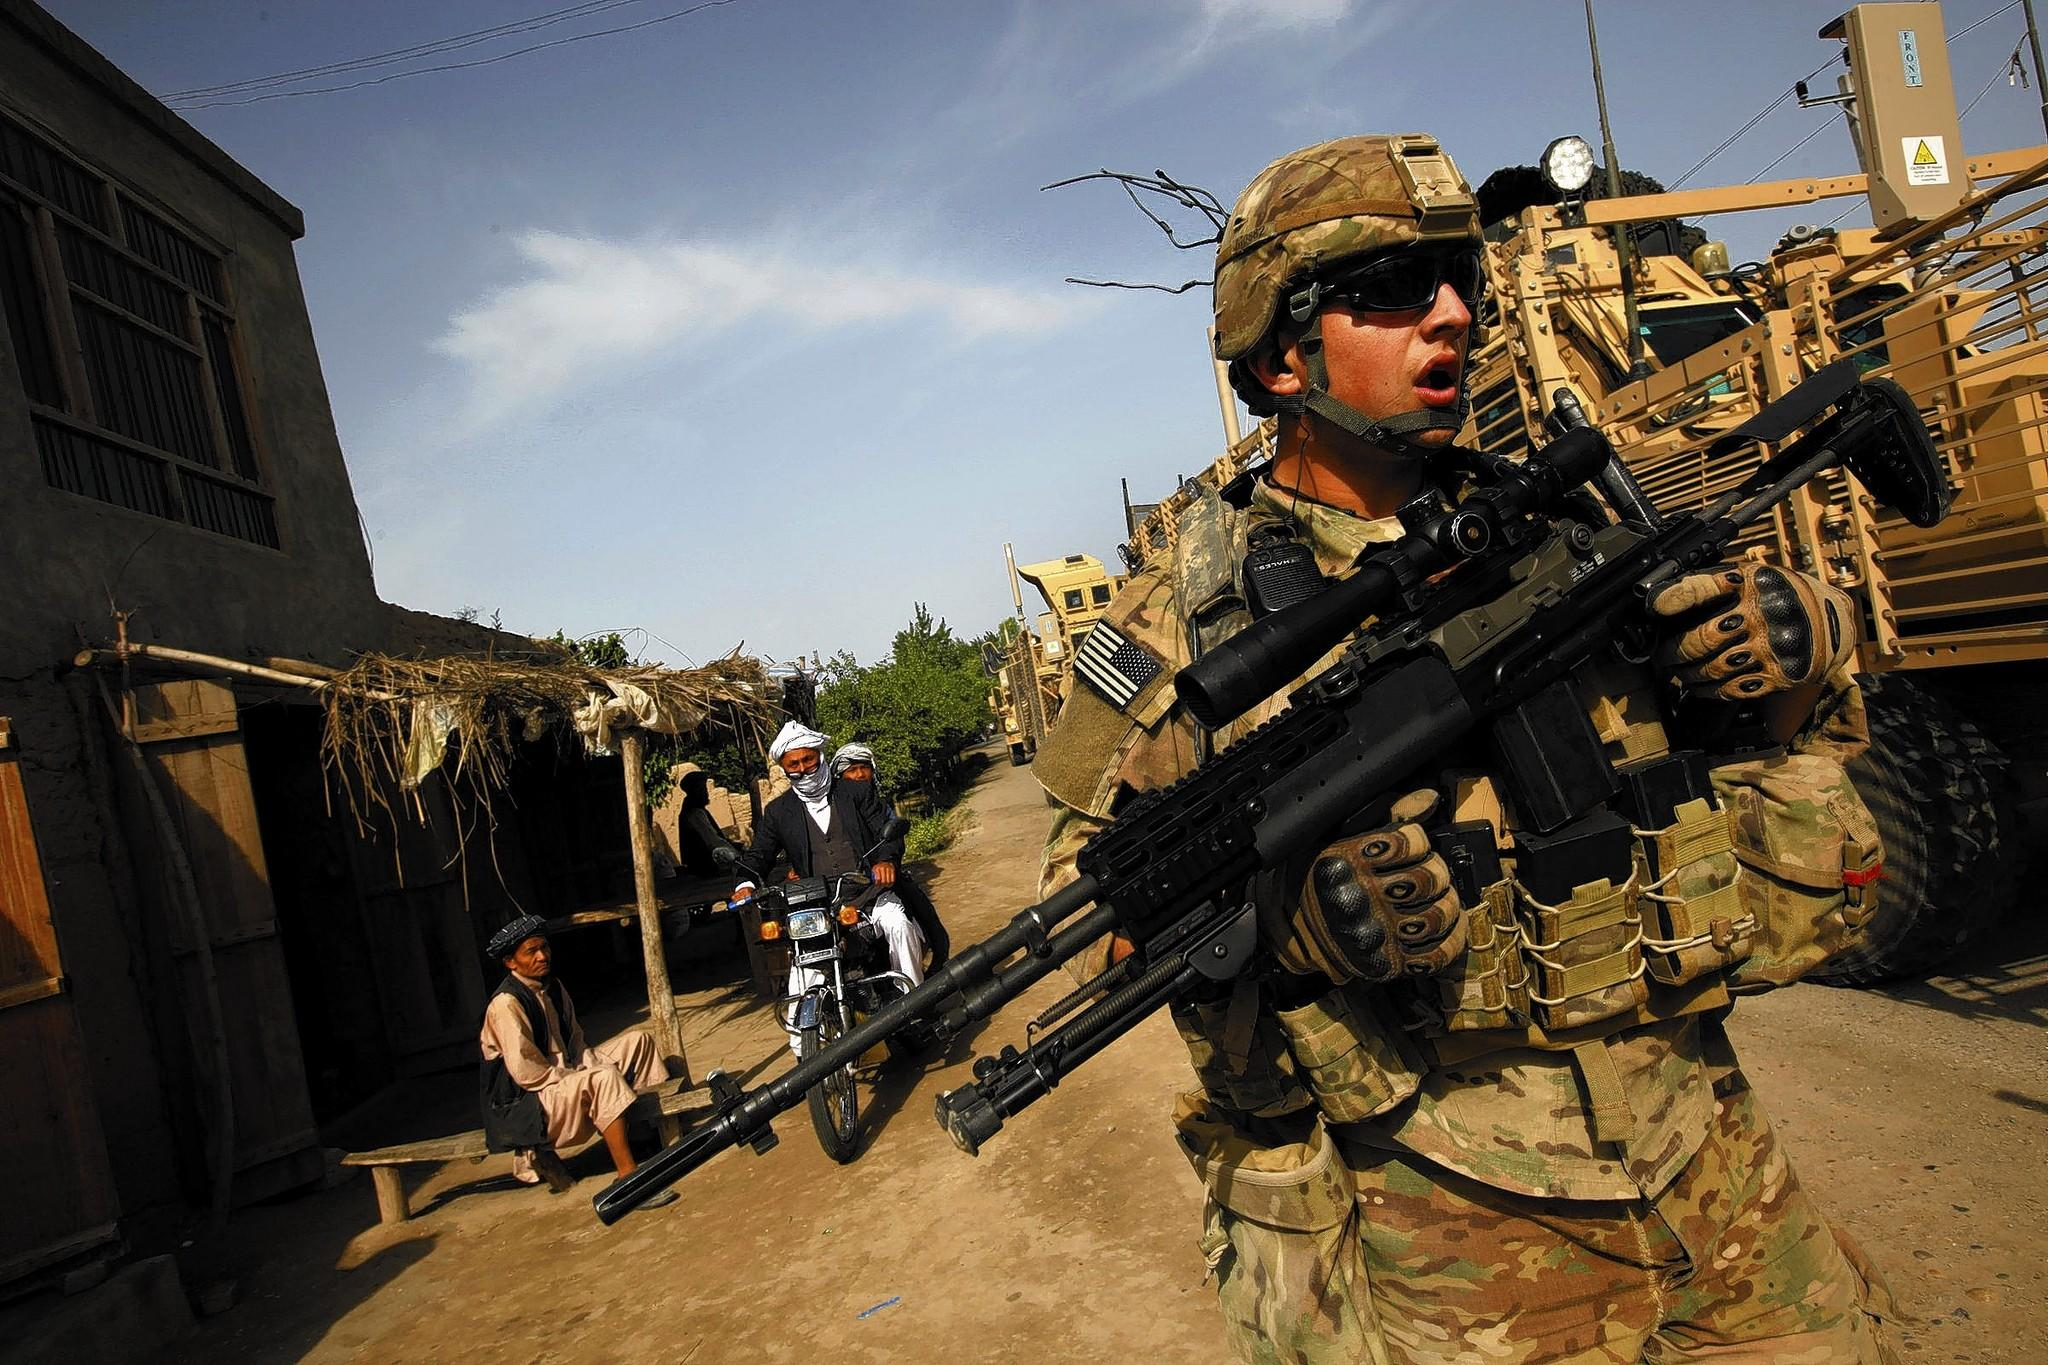 A member of a U.S. military route-clearance team works in Kunduz province in April. Security conditions in Afghanistan probably will worsen regardless of whether the U.S. keeps troops in the country, according to a new, classified assessment by U.S. intelligence agencies.